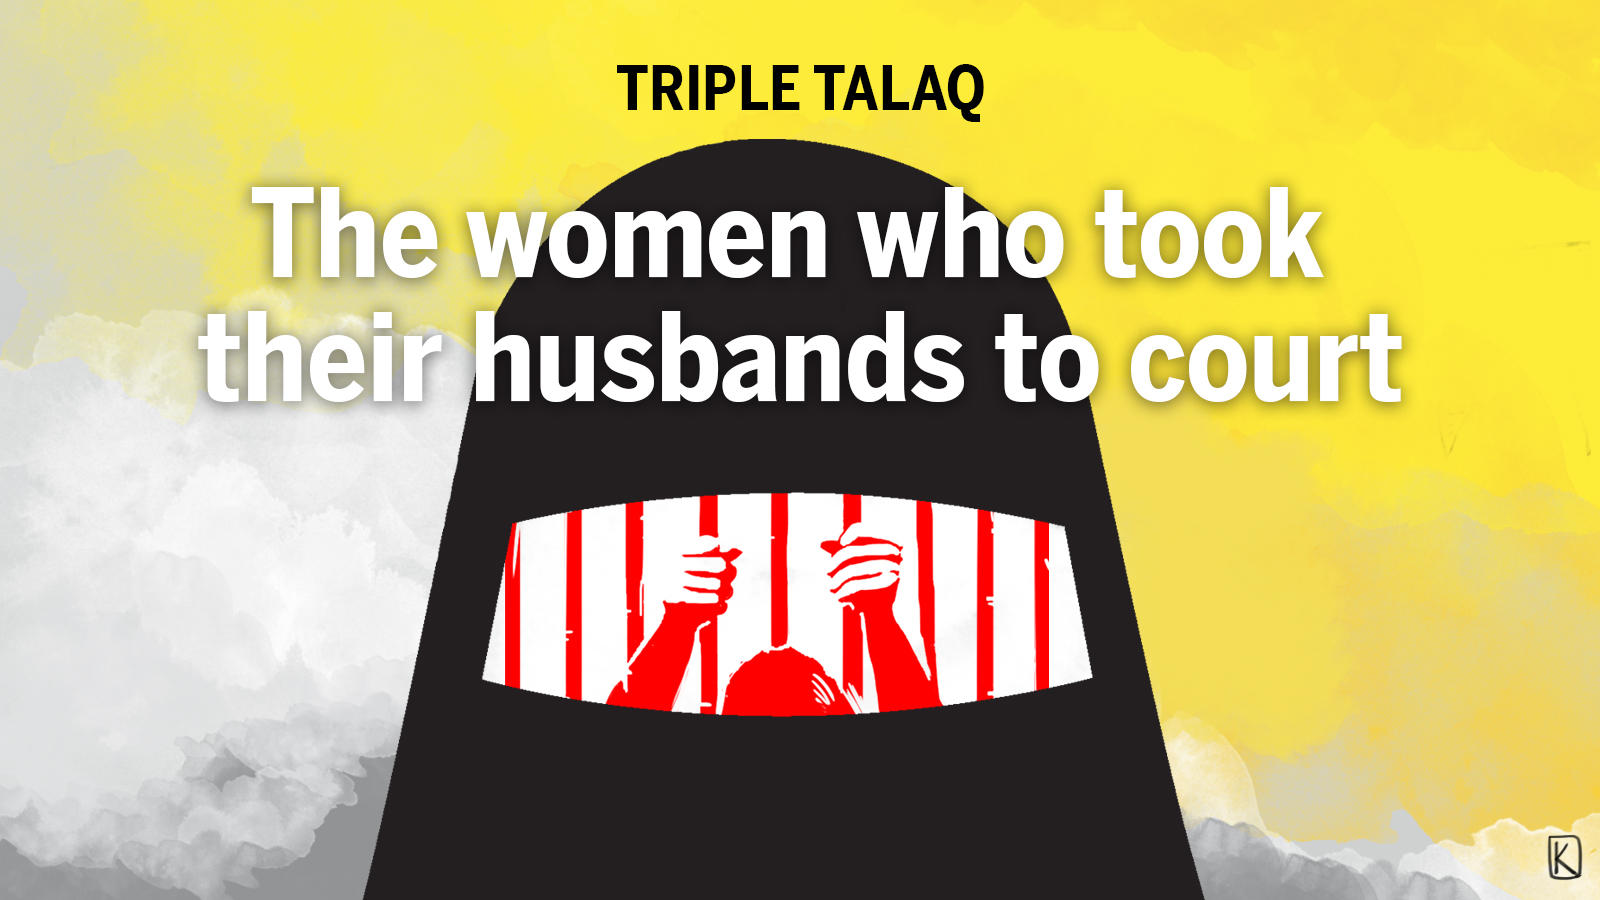 Triple talaq: The women who took their husbands to court